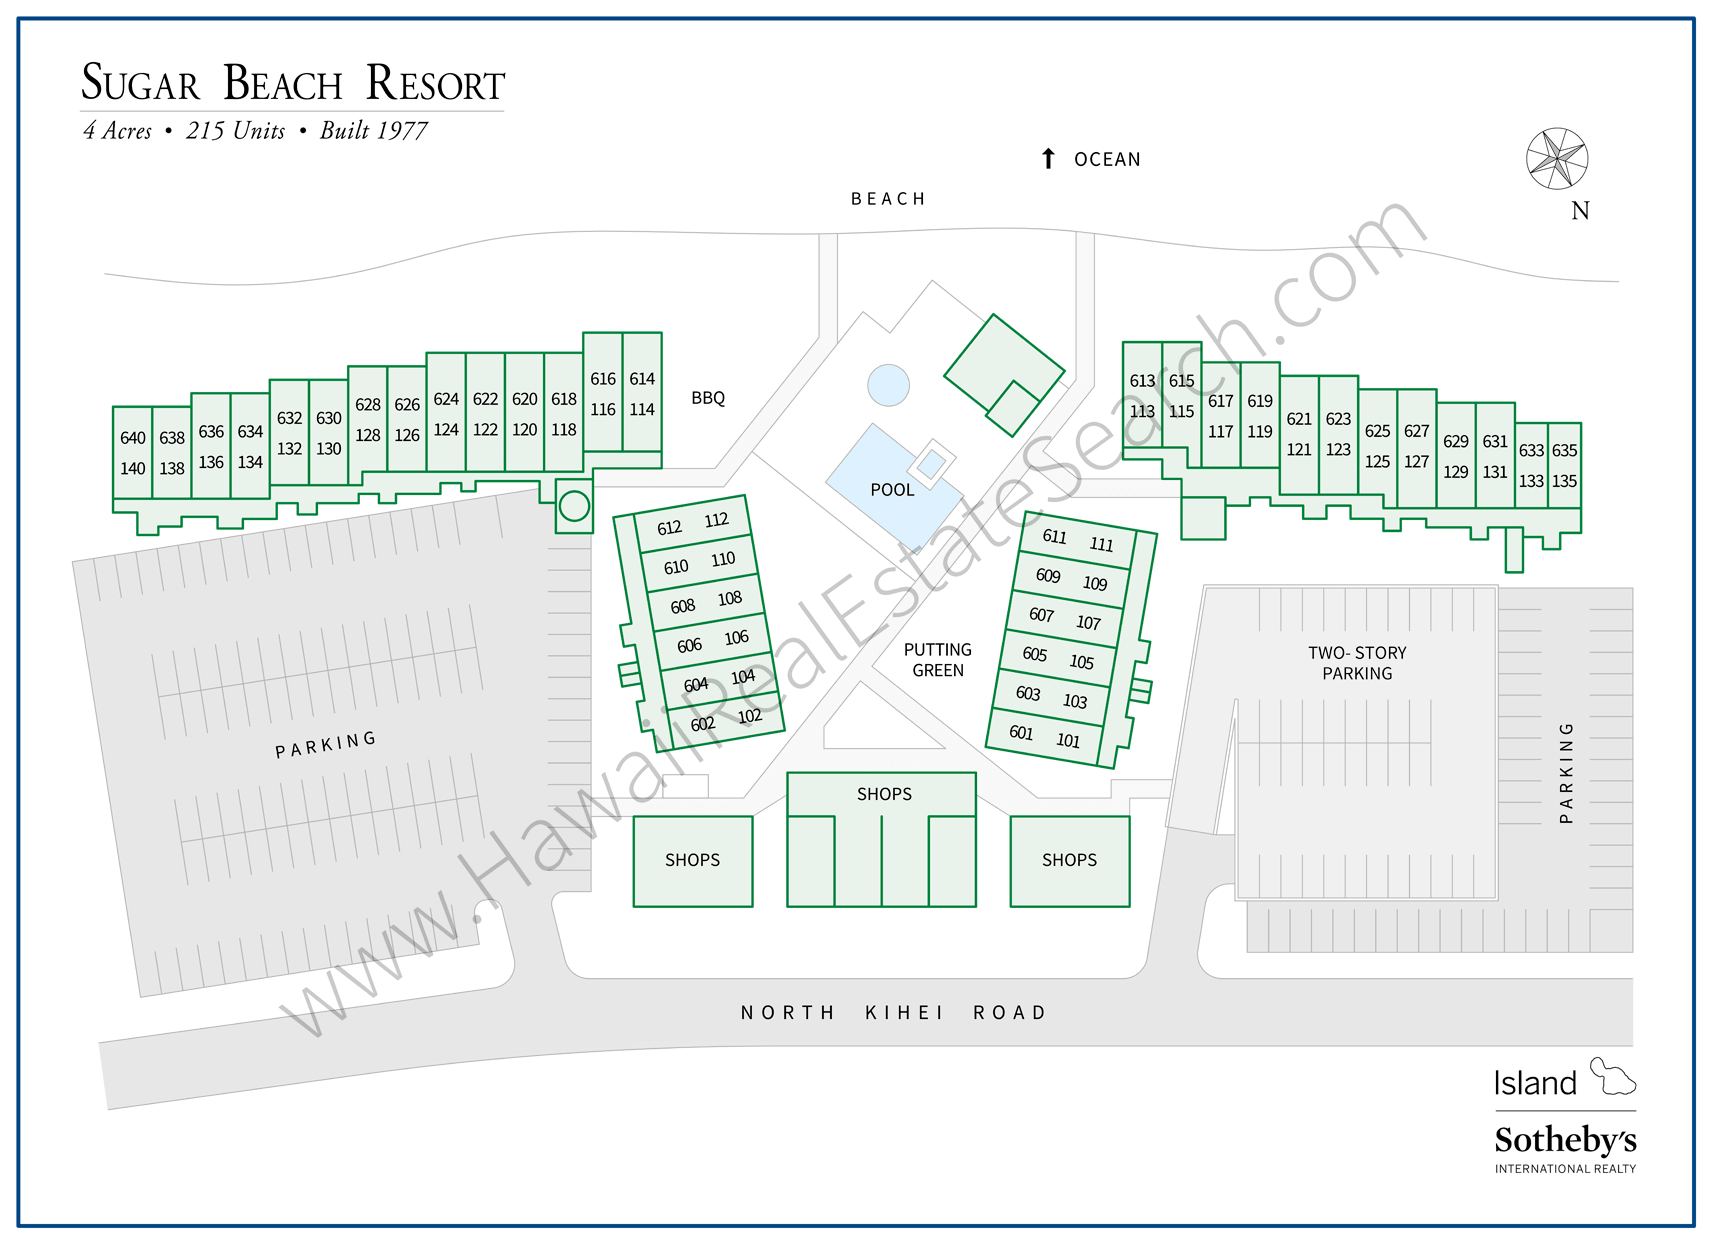 Sugar Beach Resort Map 2018 Updated